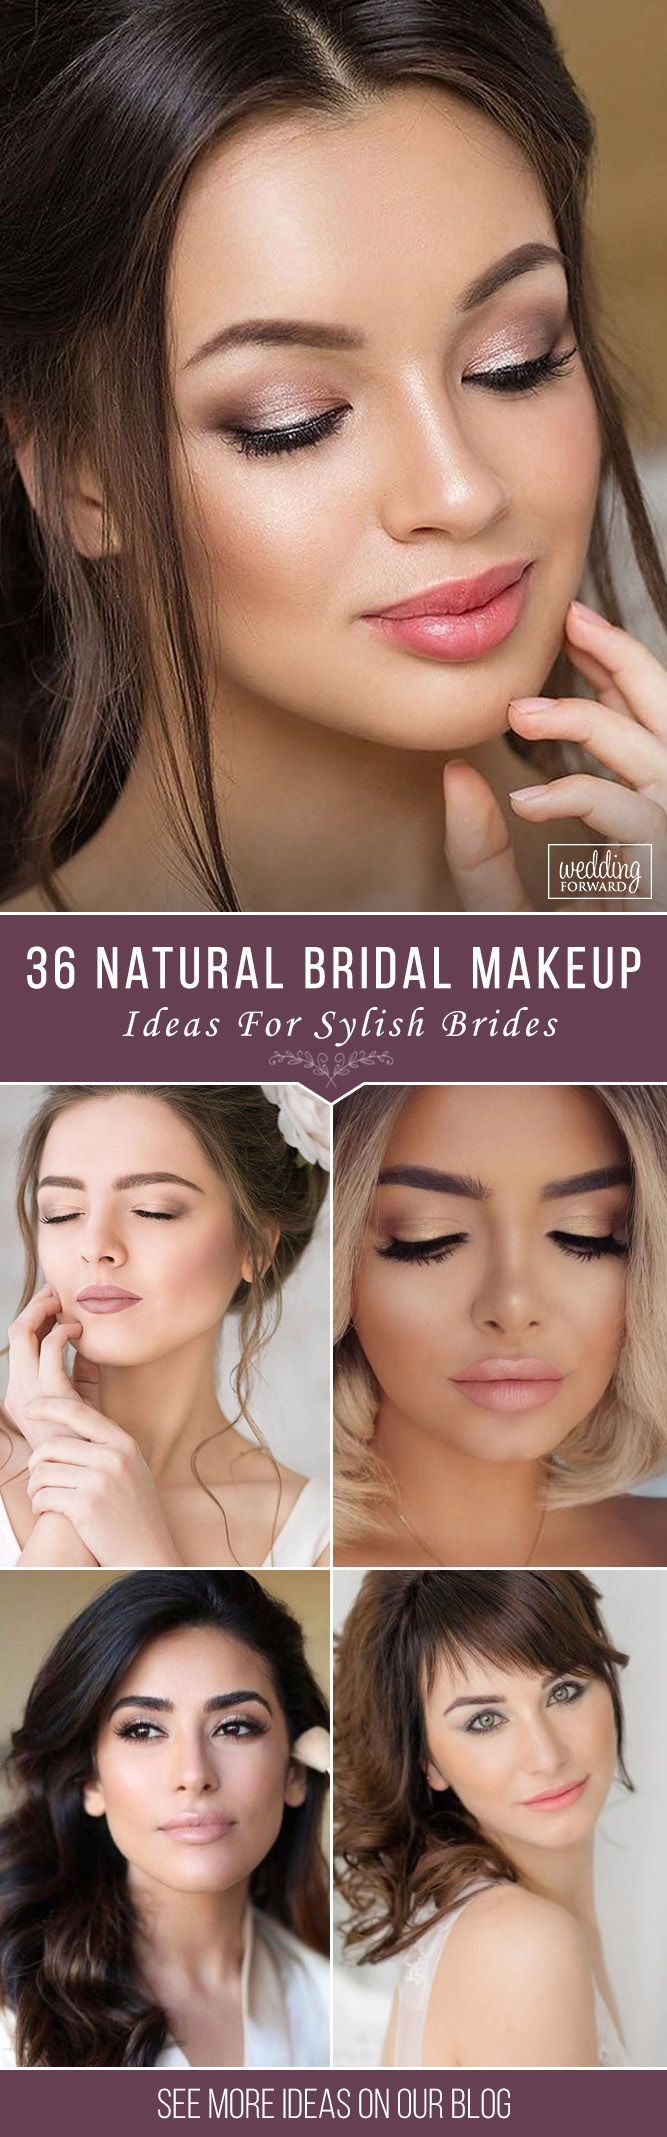 36 Ideas For Natural Bridal Makeup ❤ Natural bridal makeup is a good choice to make your look tender and romantic. Look our collection of natural makeup ideas. See more: http://www.weddingforward.com/natural-bridal-makeup/ #wedding #bride #naturalbridalmakeup